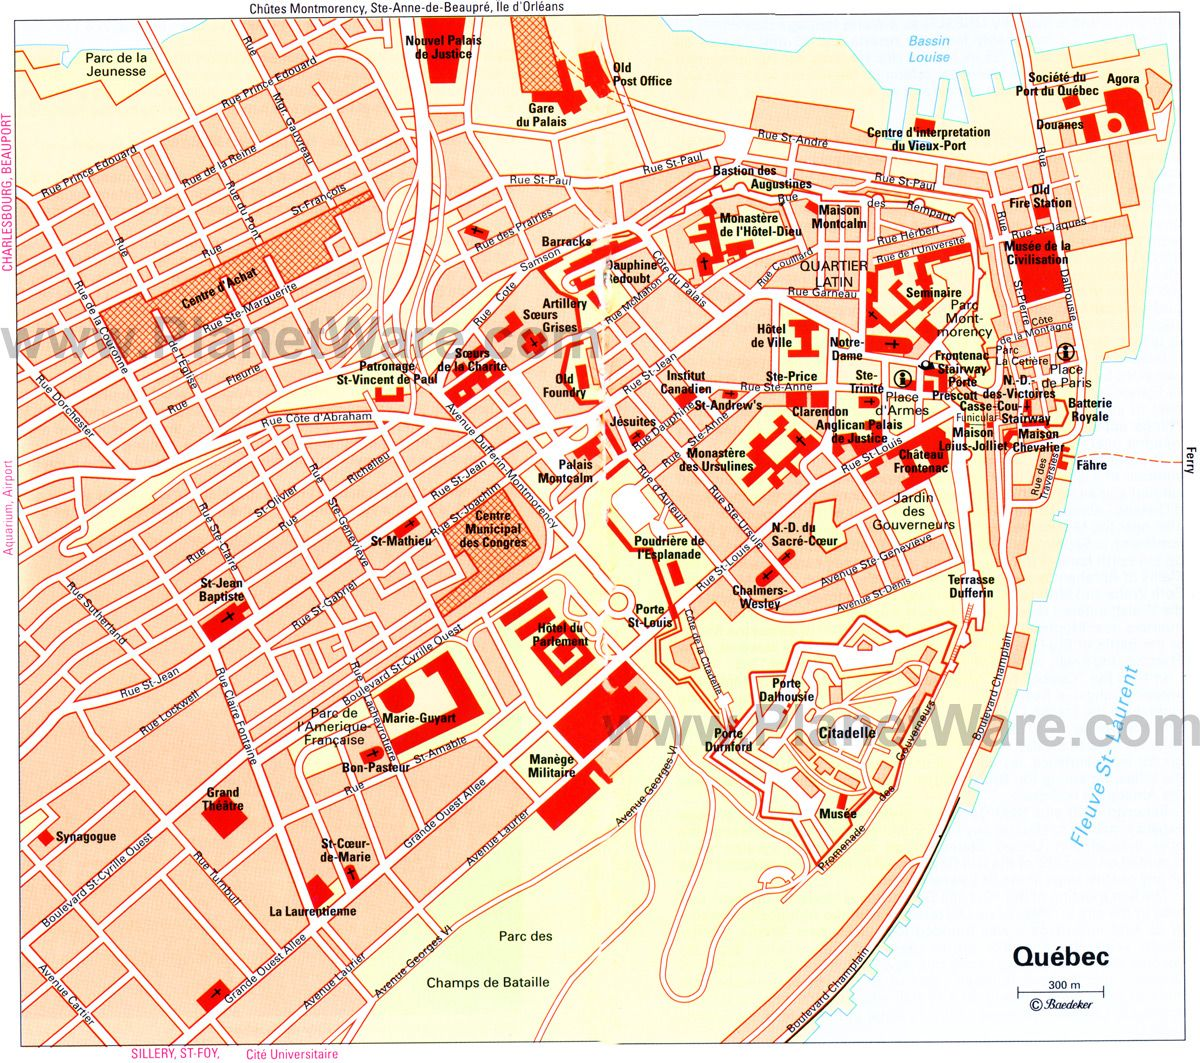 map of quebec city attractions. map of quebec city attractions  quebec city  pinterest  quebec